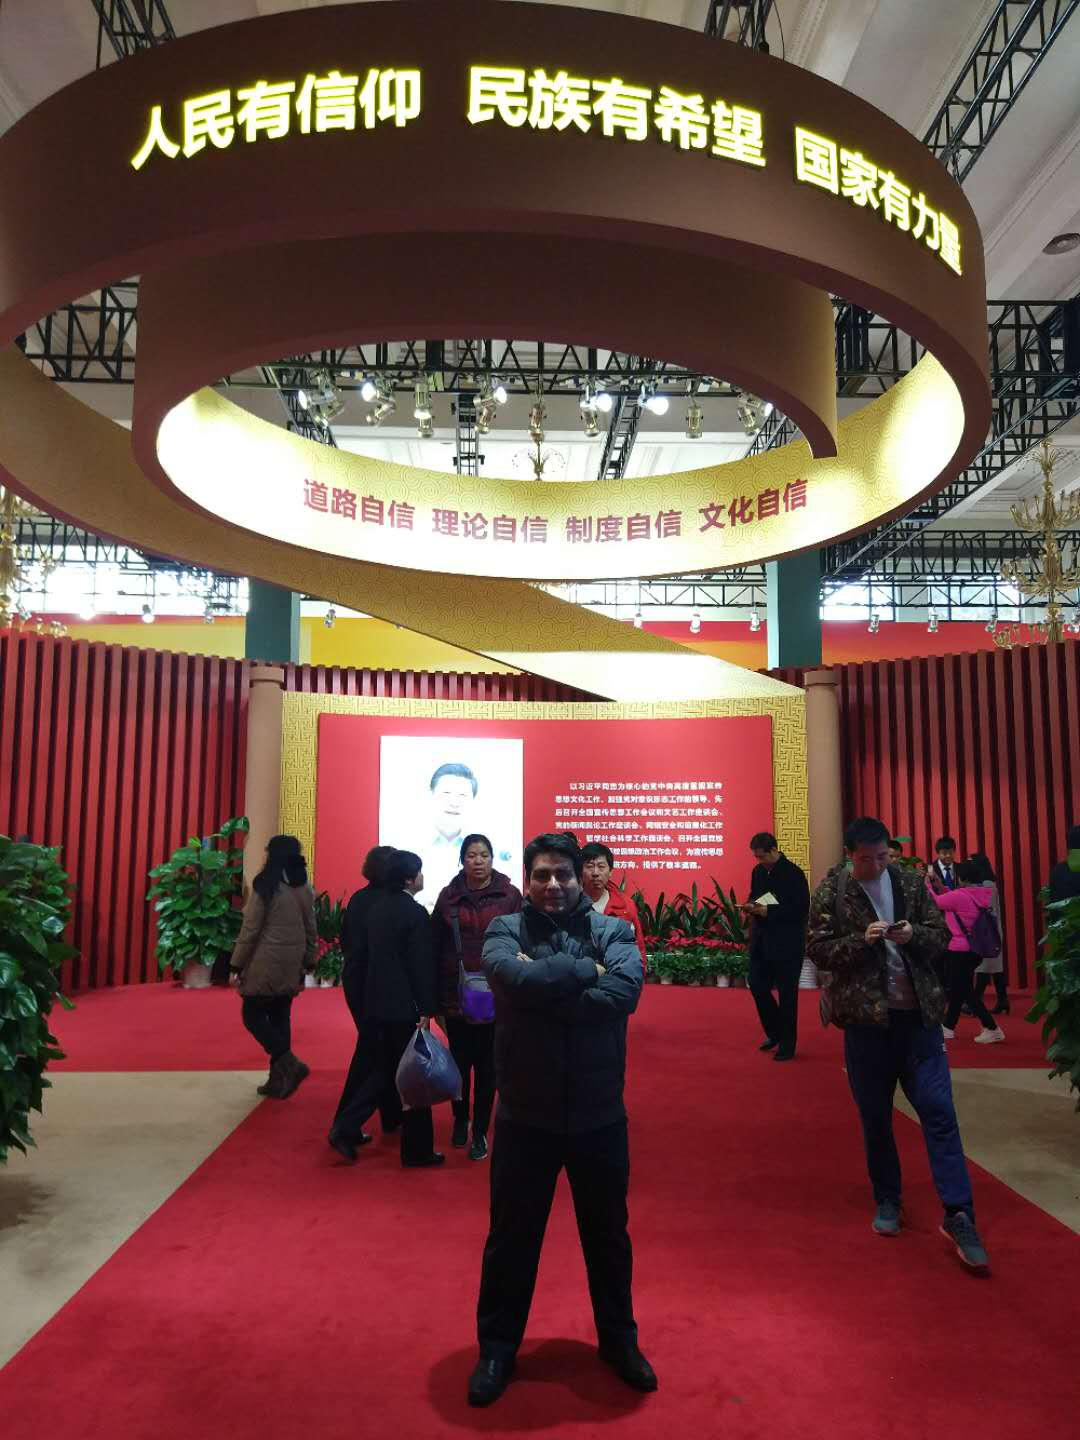 The writer visits the exhibition highlighting China's achievements in the past 5 years at Beijing Exhibition Center. Photo provided by writer